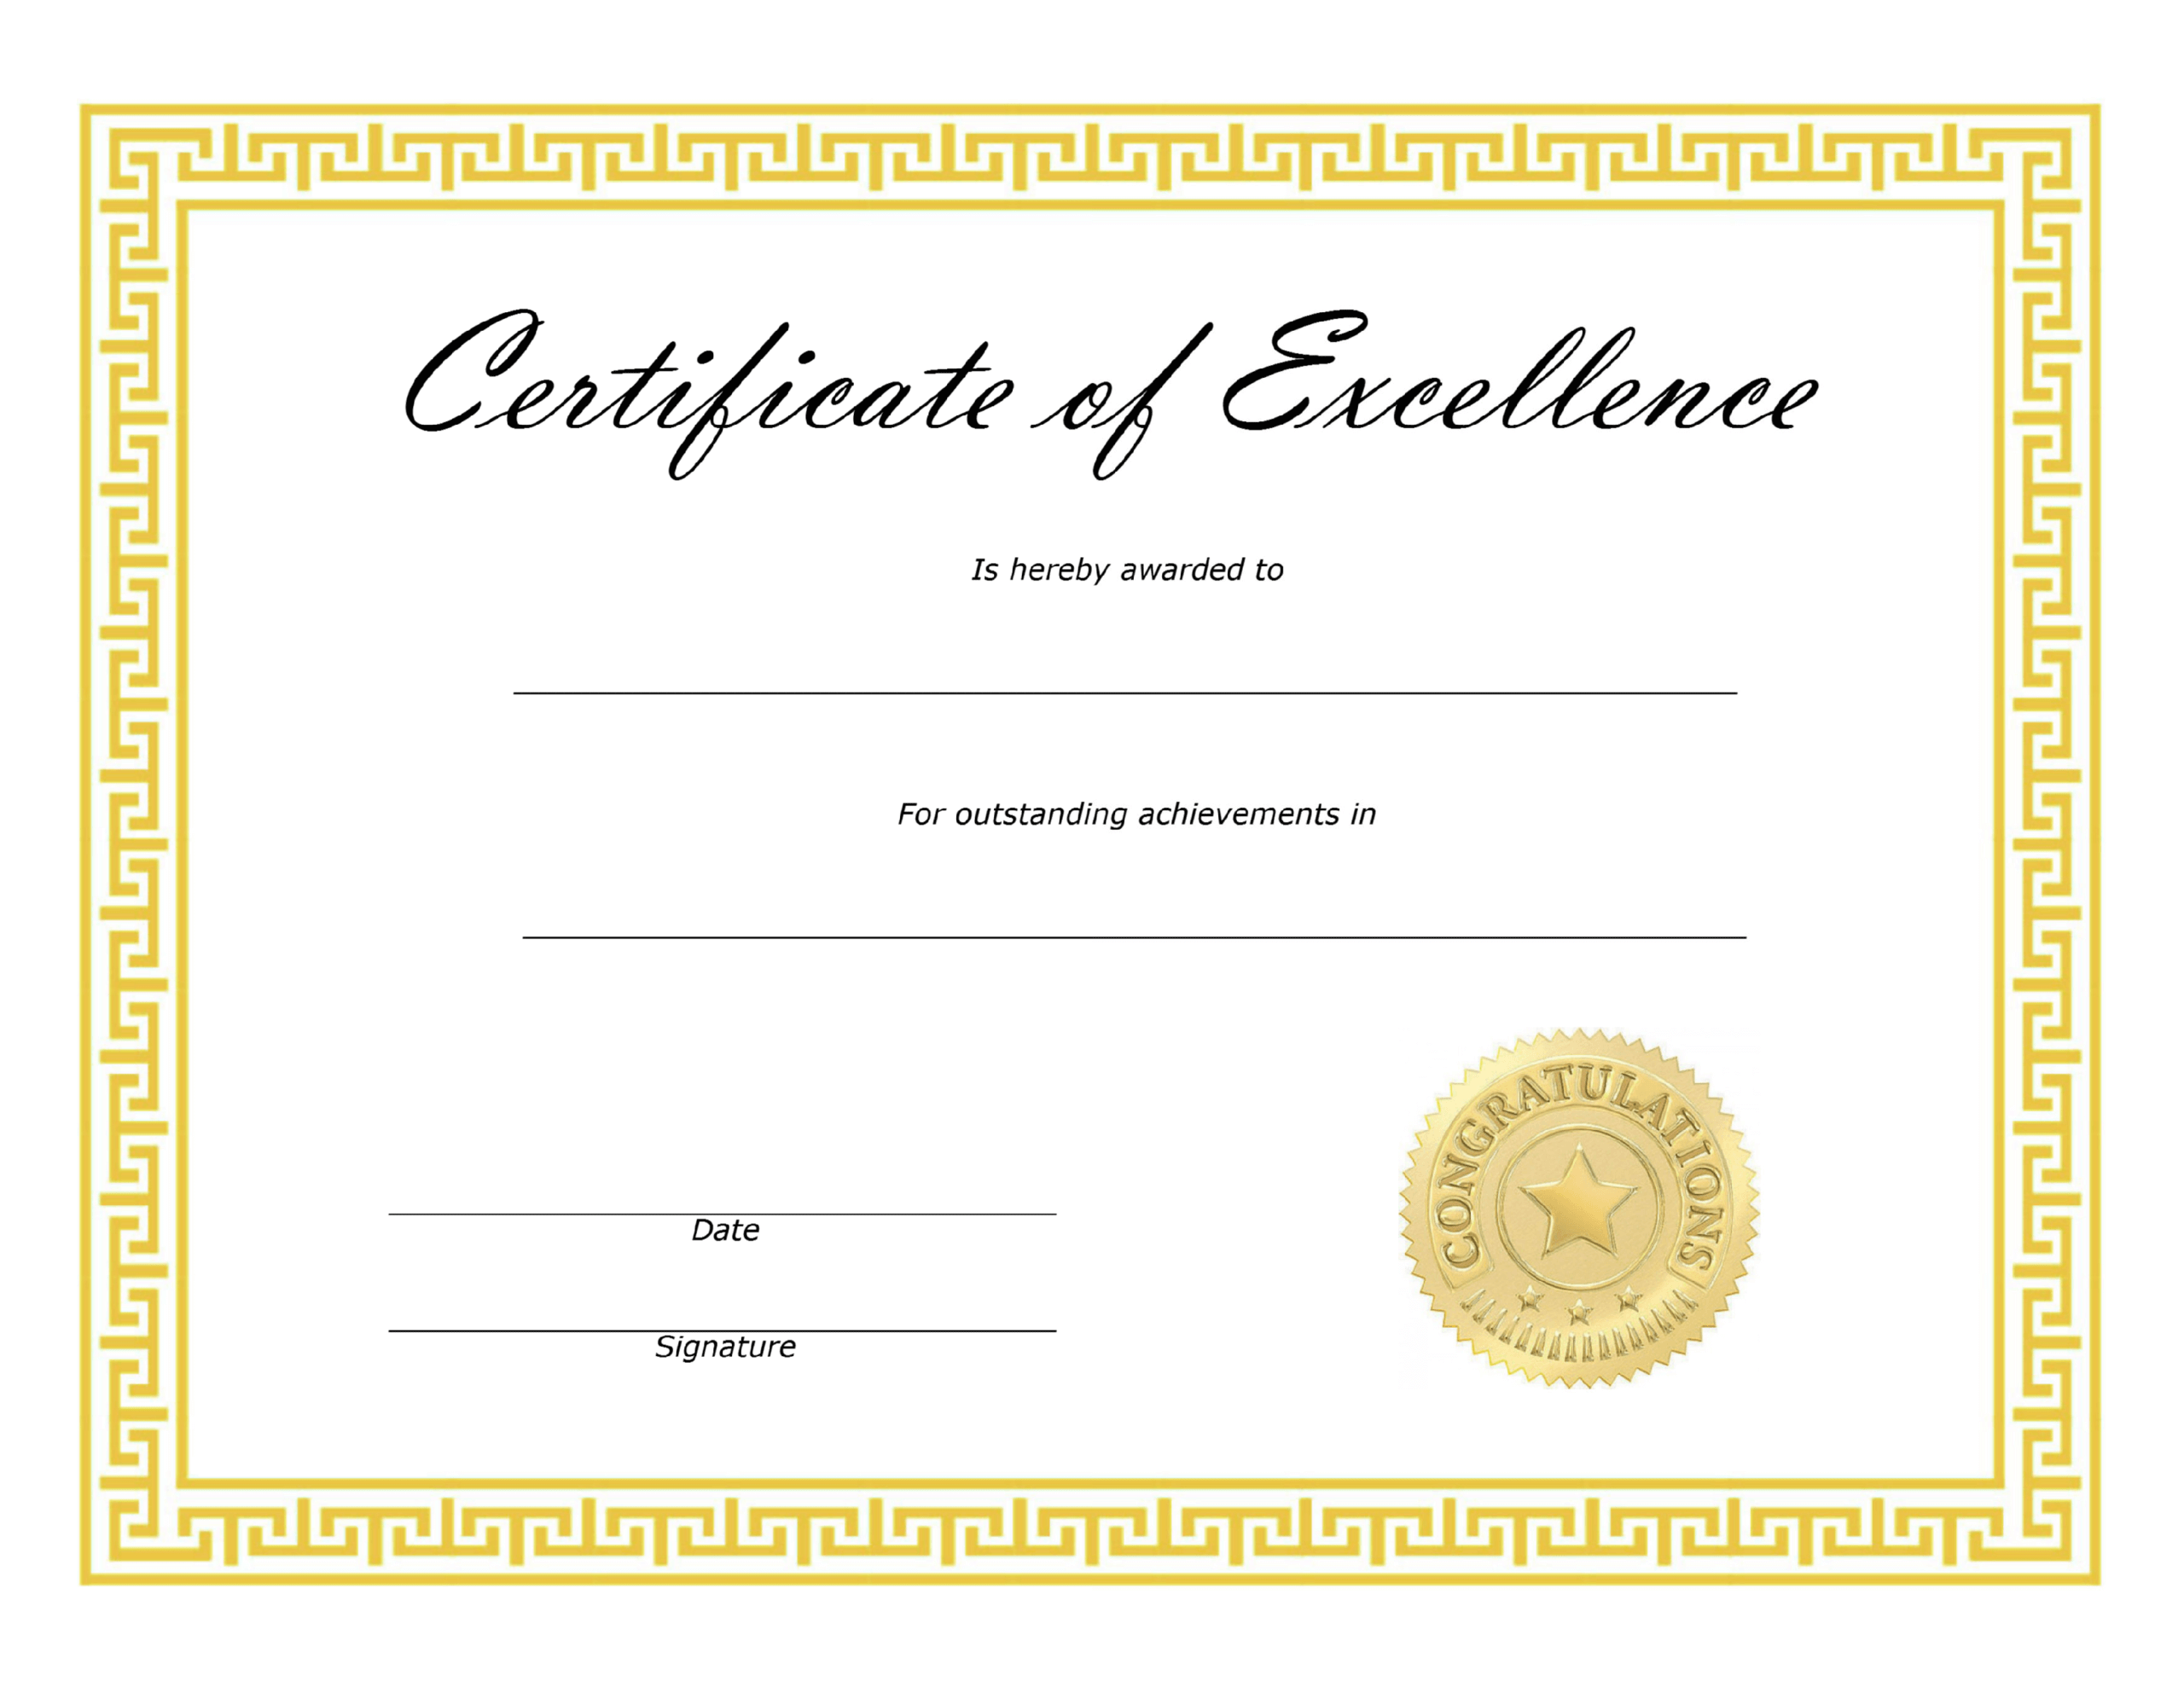 ❤️ Free Sample Certificate Of Excellence Templates❤️ Intended For Free Certificate Of Excellence Template